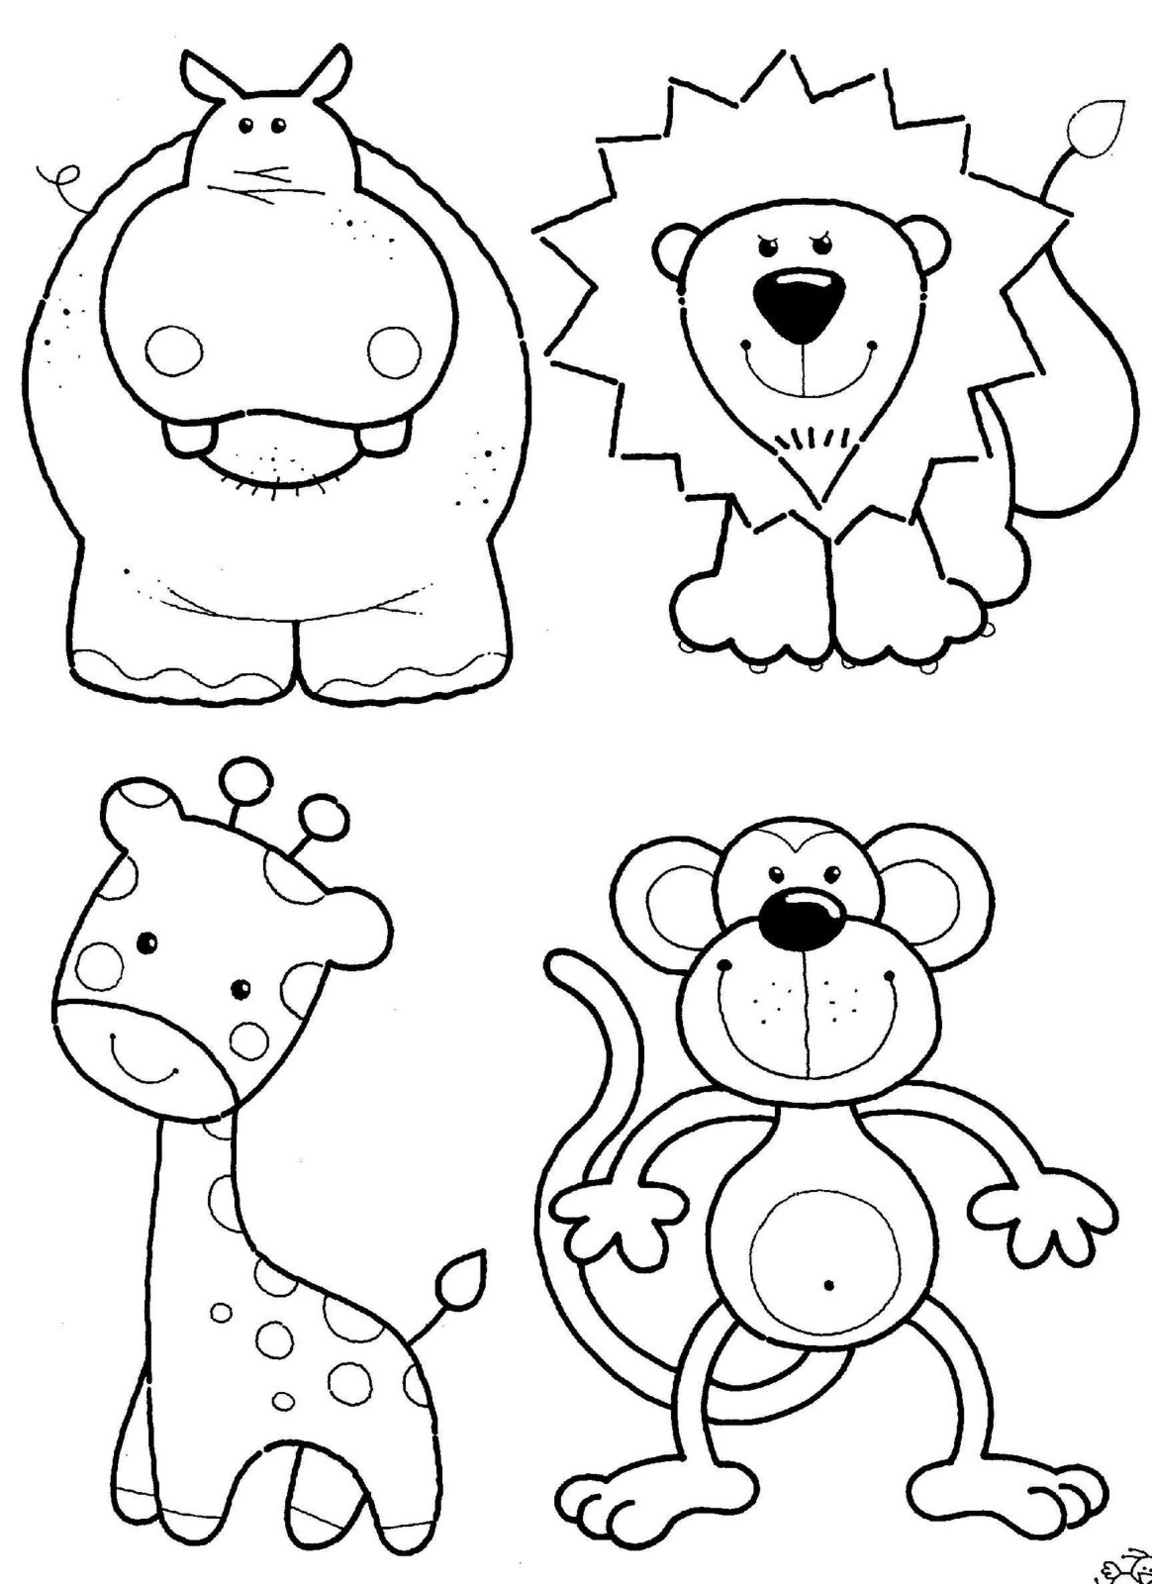 coloring the animal zoo animals coloring pages best coloring pages for kids the coloring animal